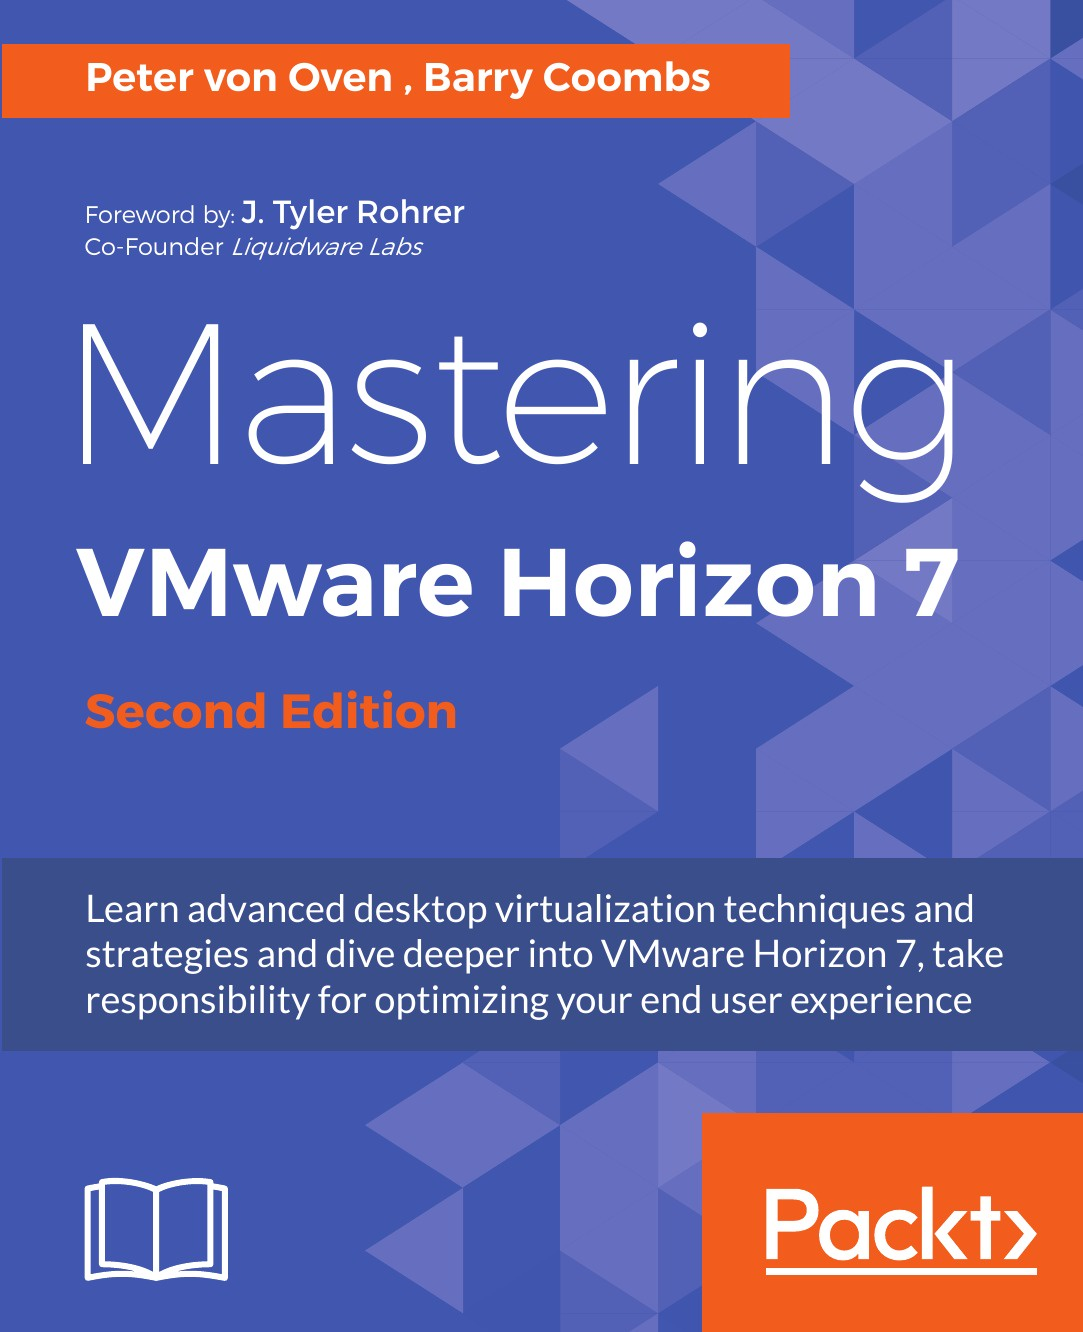 Peter von Oven, Barry Coombs Mastering VMware Horizon 7, Second Edition jason ventresco implementing vmware horizon 7